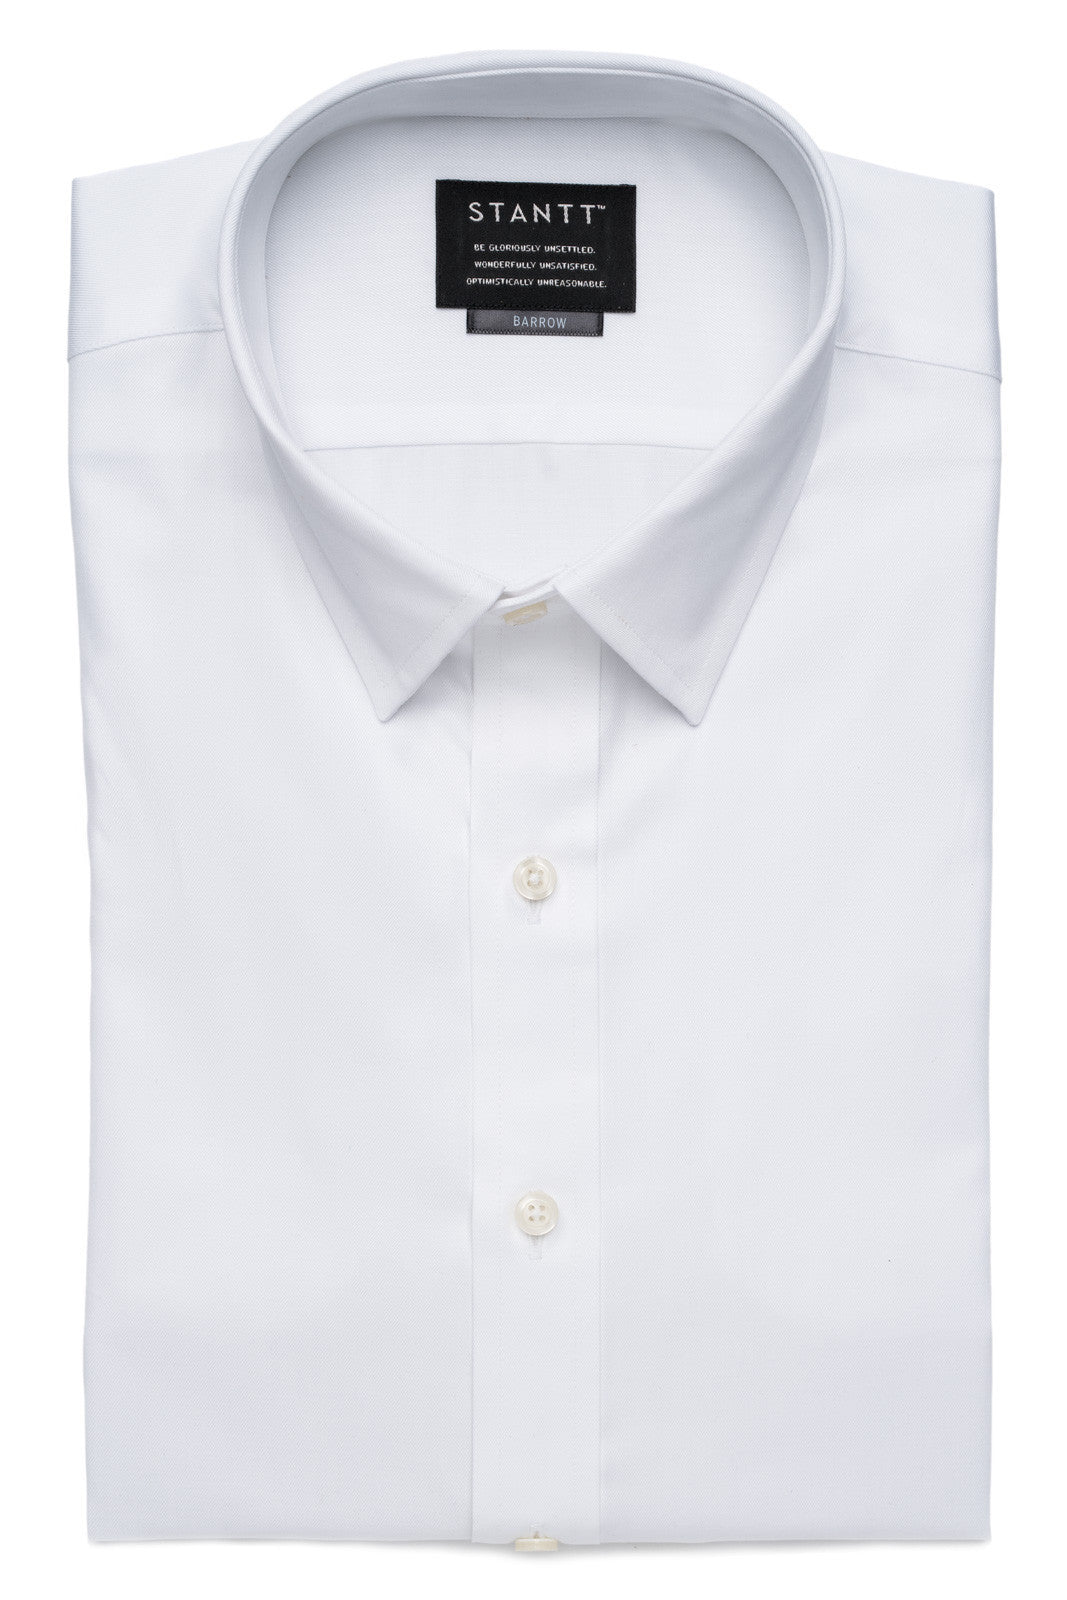 Fine White Twill: Modified Spread Collar, Barrel Cuff